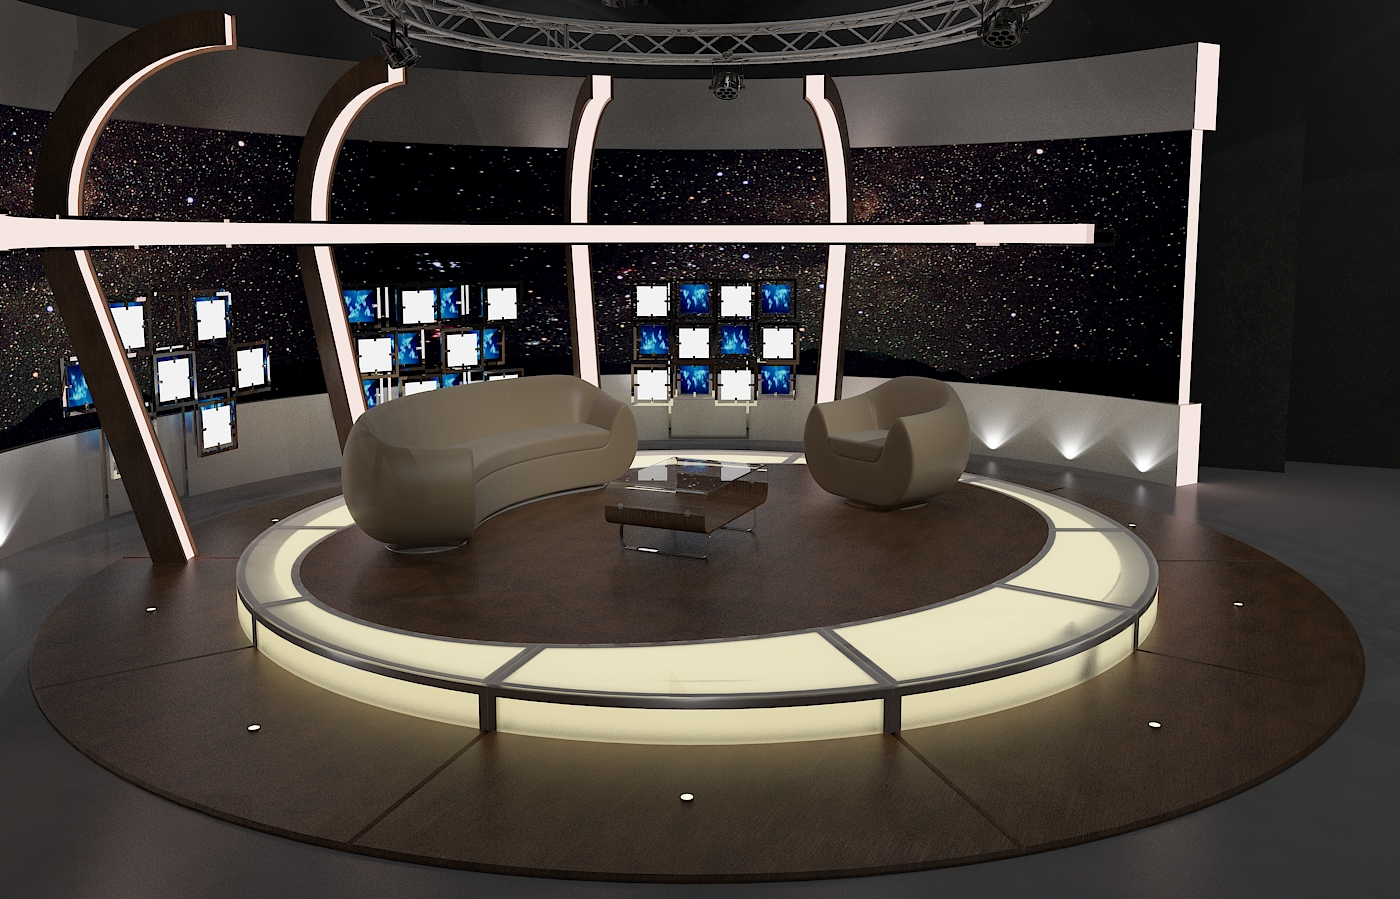 3d Virtual Tv Studio Chat Set 20 By Canan85 3docean